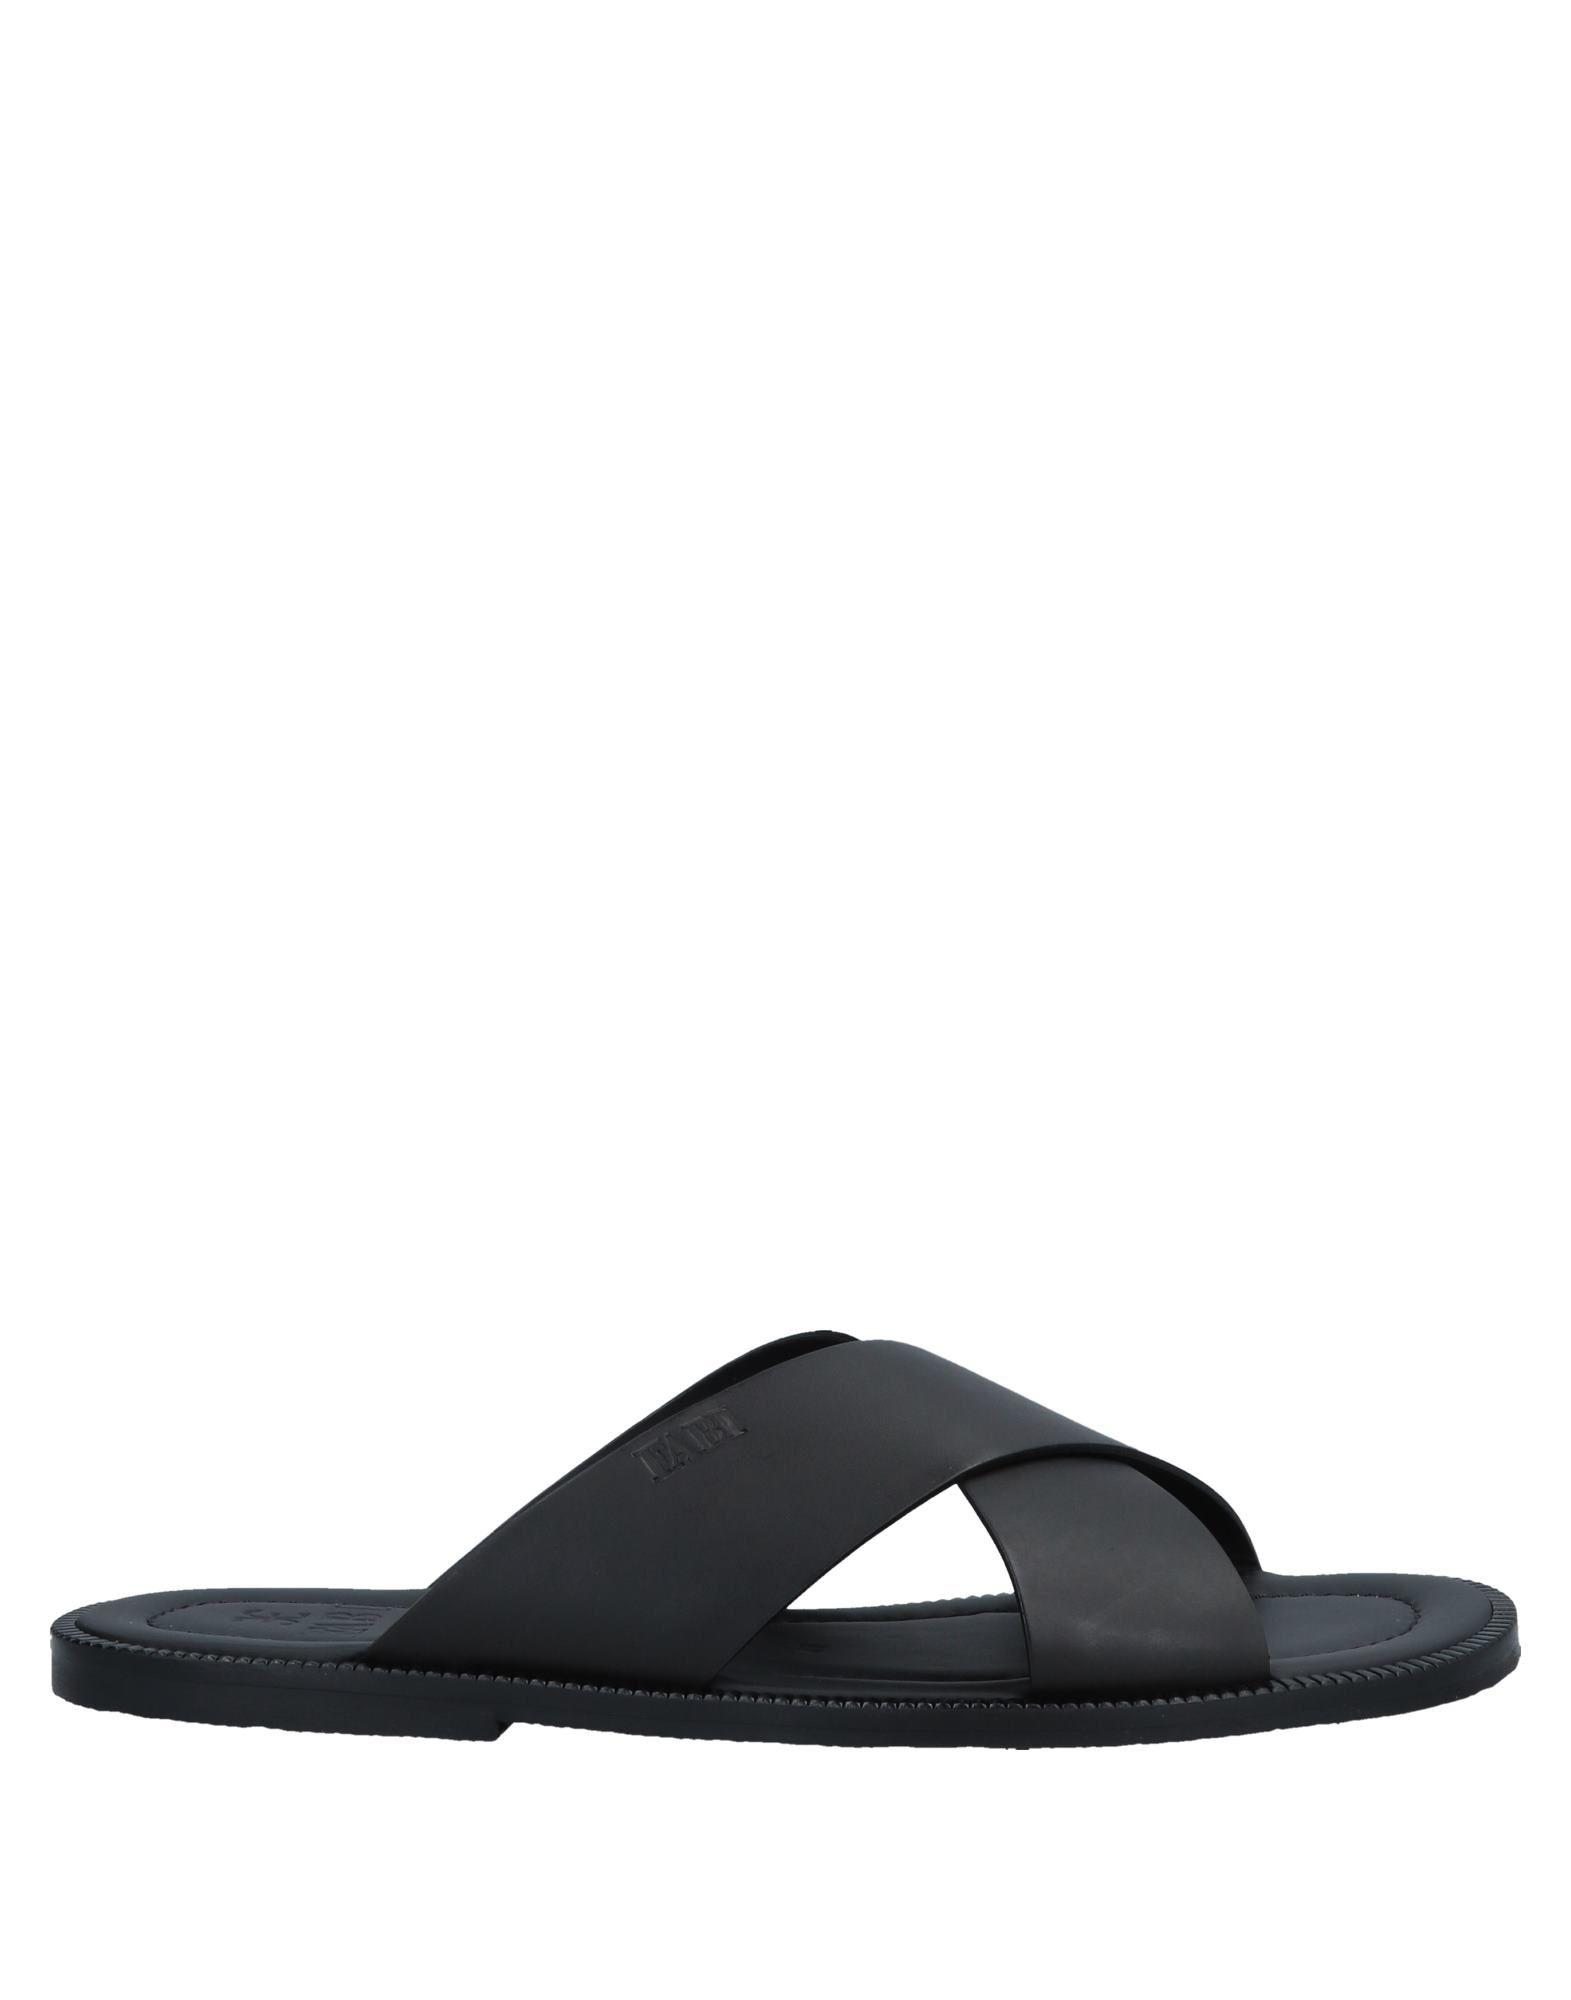 32499f81feec Lyst - Fabi Sandals in Black for Men